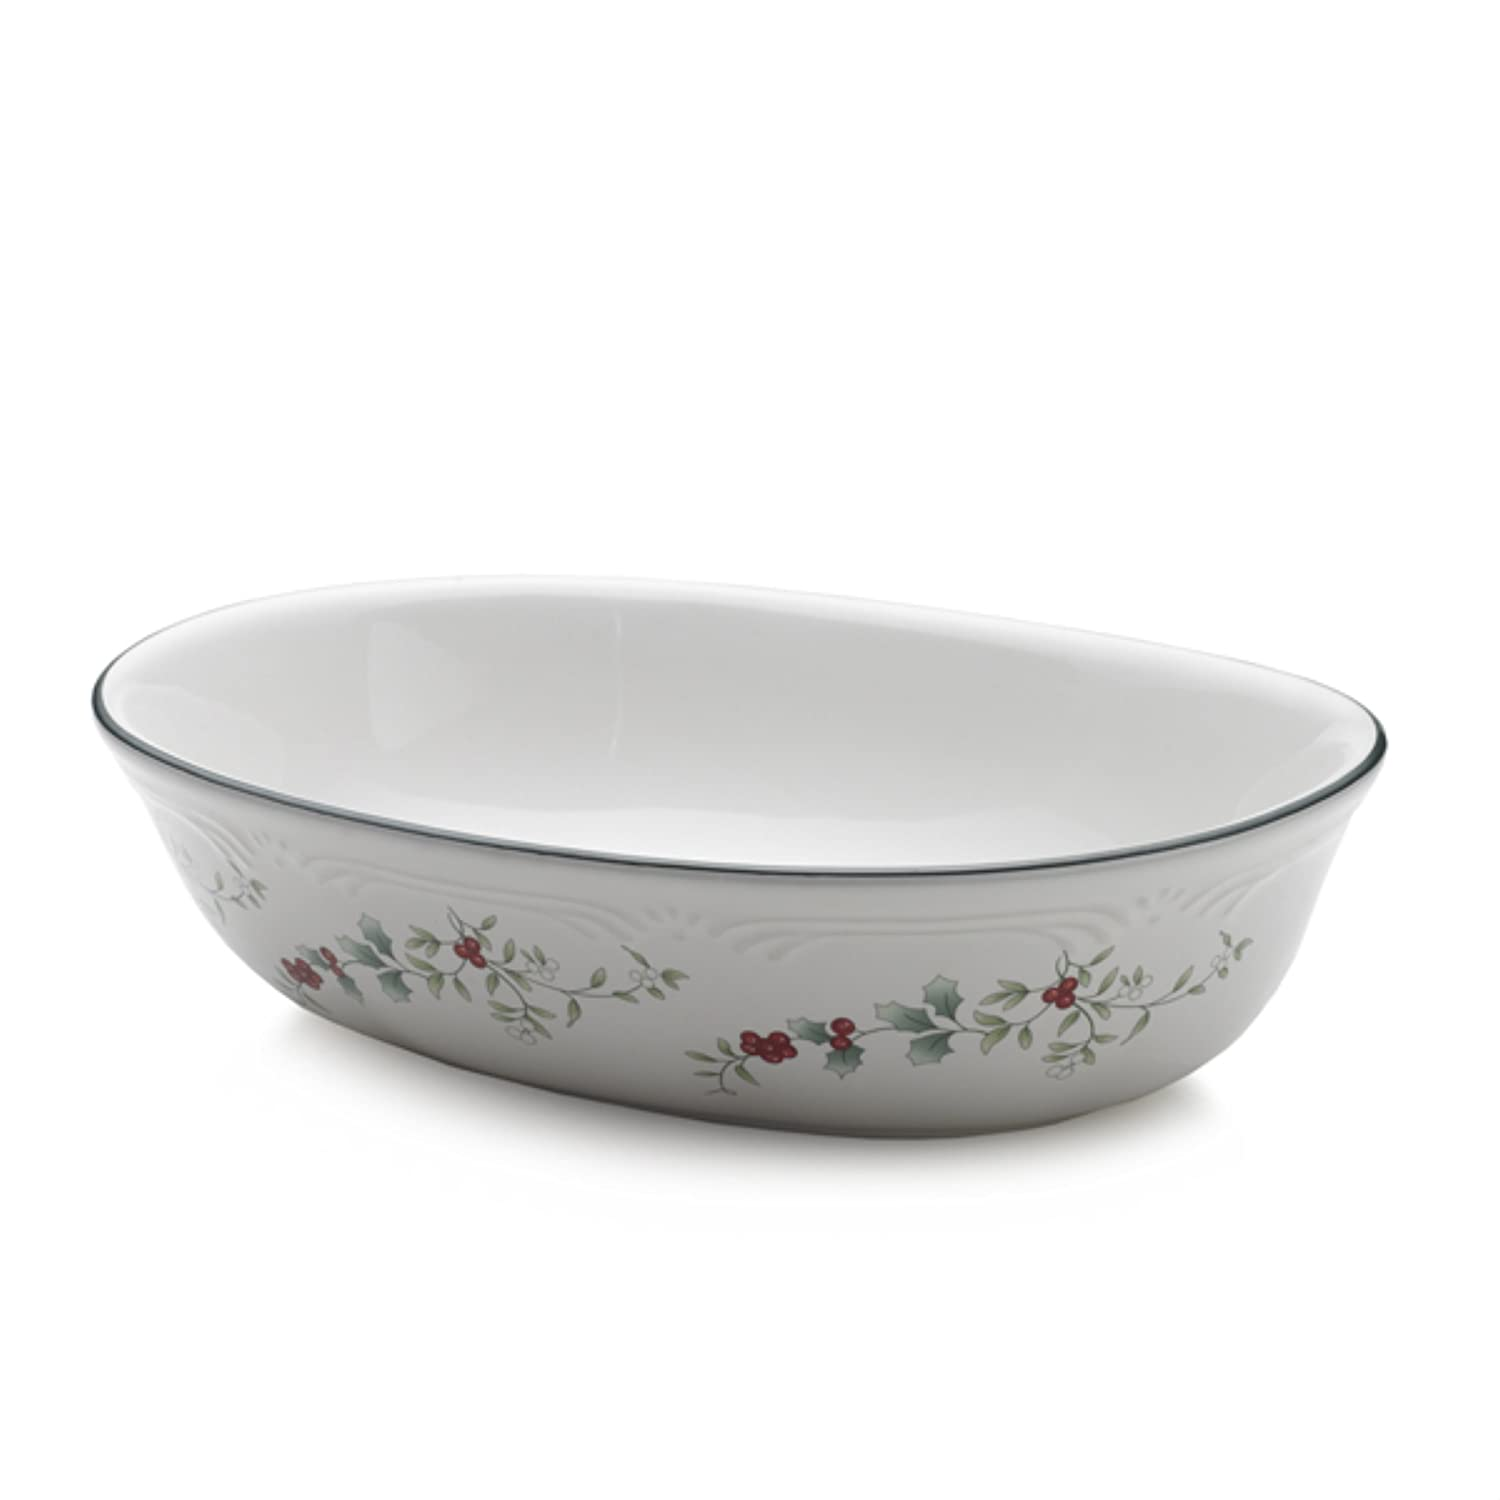 Pfaltzgraff Winterberry Oval Vegetable Bowl 10994300